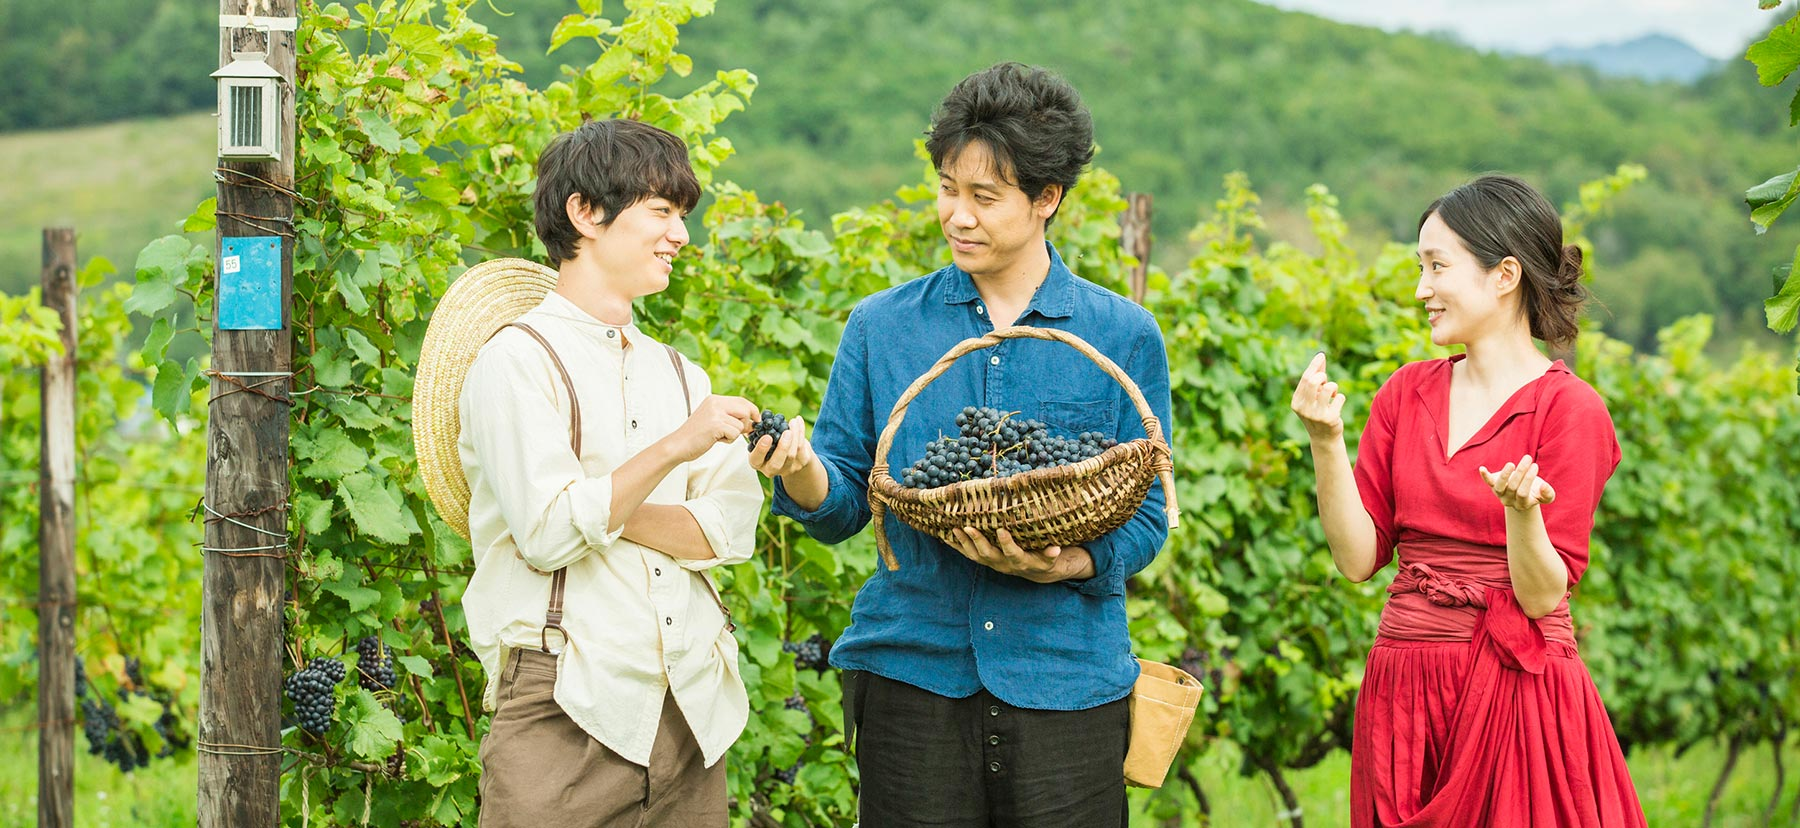 Two men and a woman stand in amidst the grapevines holding a basket full of harvested grapes